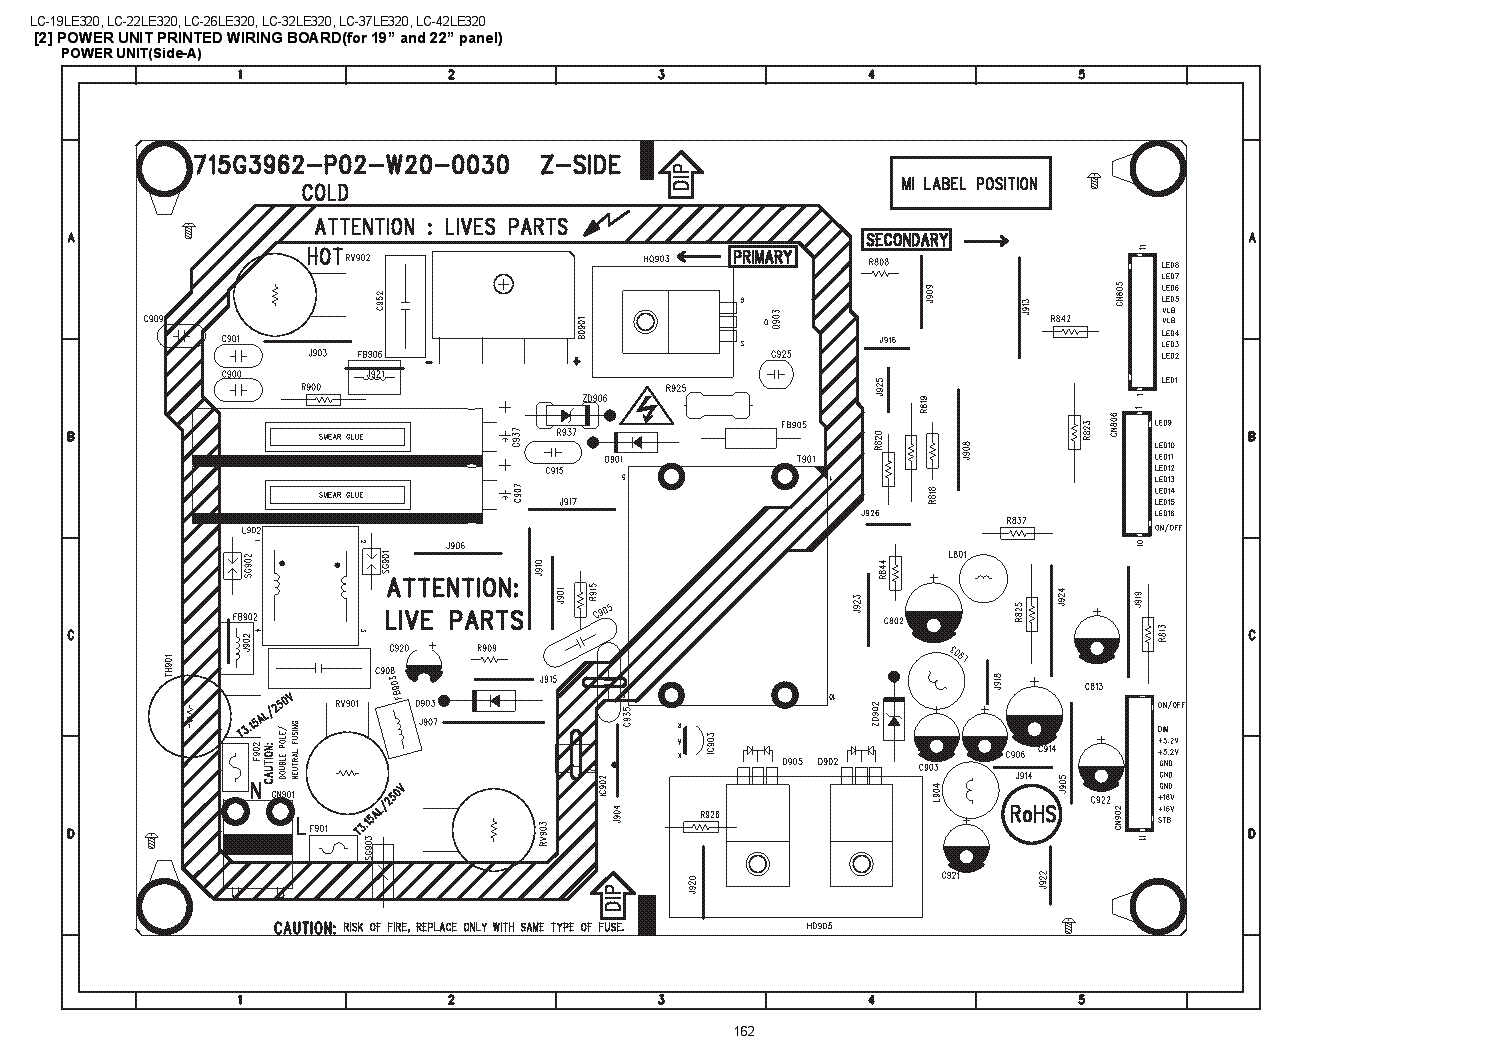 China Jsk 007a Lcd Tv Power Supply Schematic Diagram